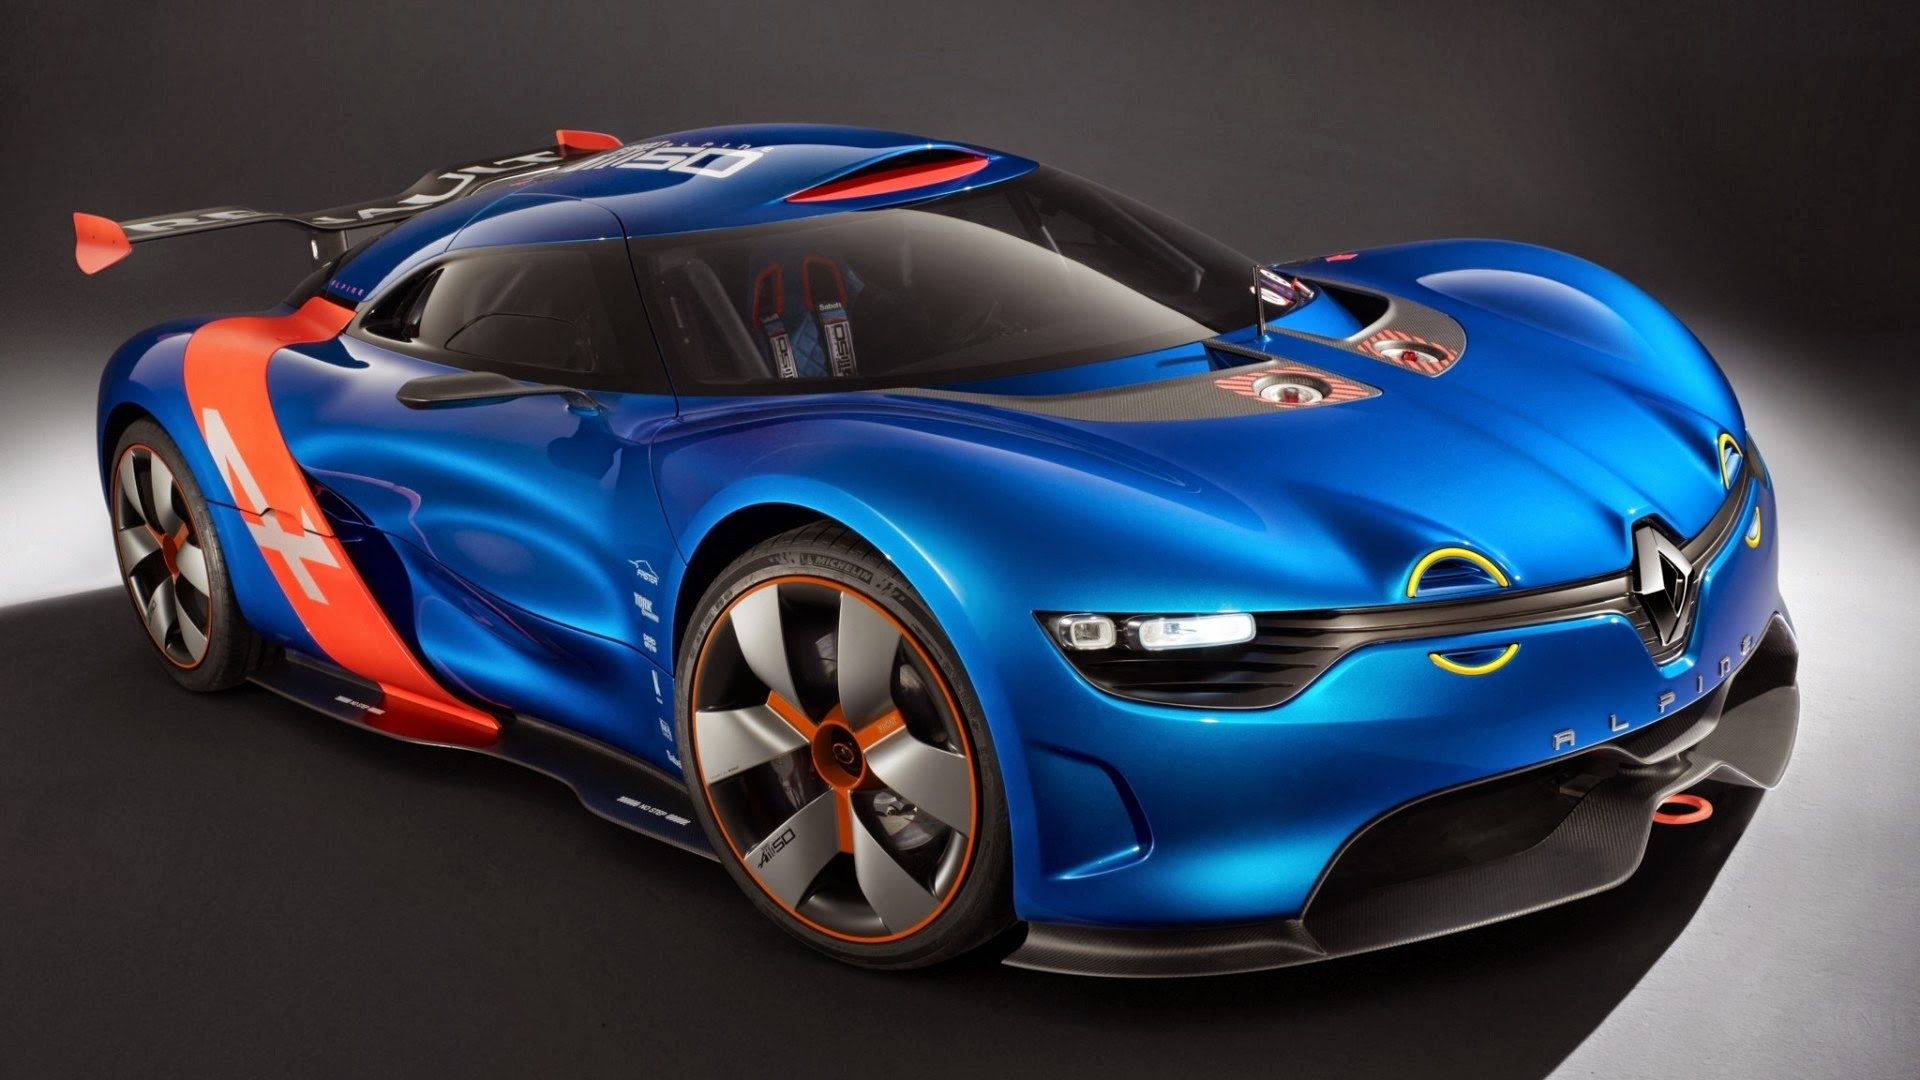 renault alpine a110 50 concept car fondos de pantalla hd wallpapers hd. Black Bedroom Furniture Sets. Home Design Ideas